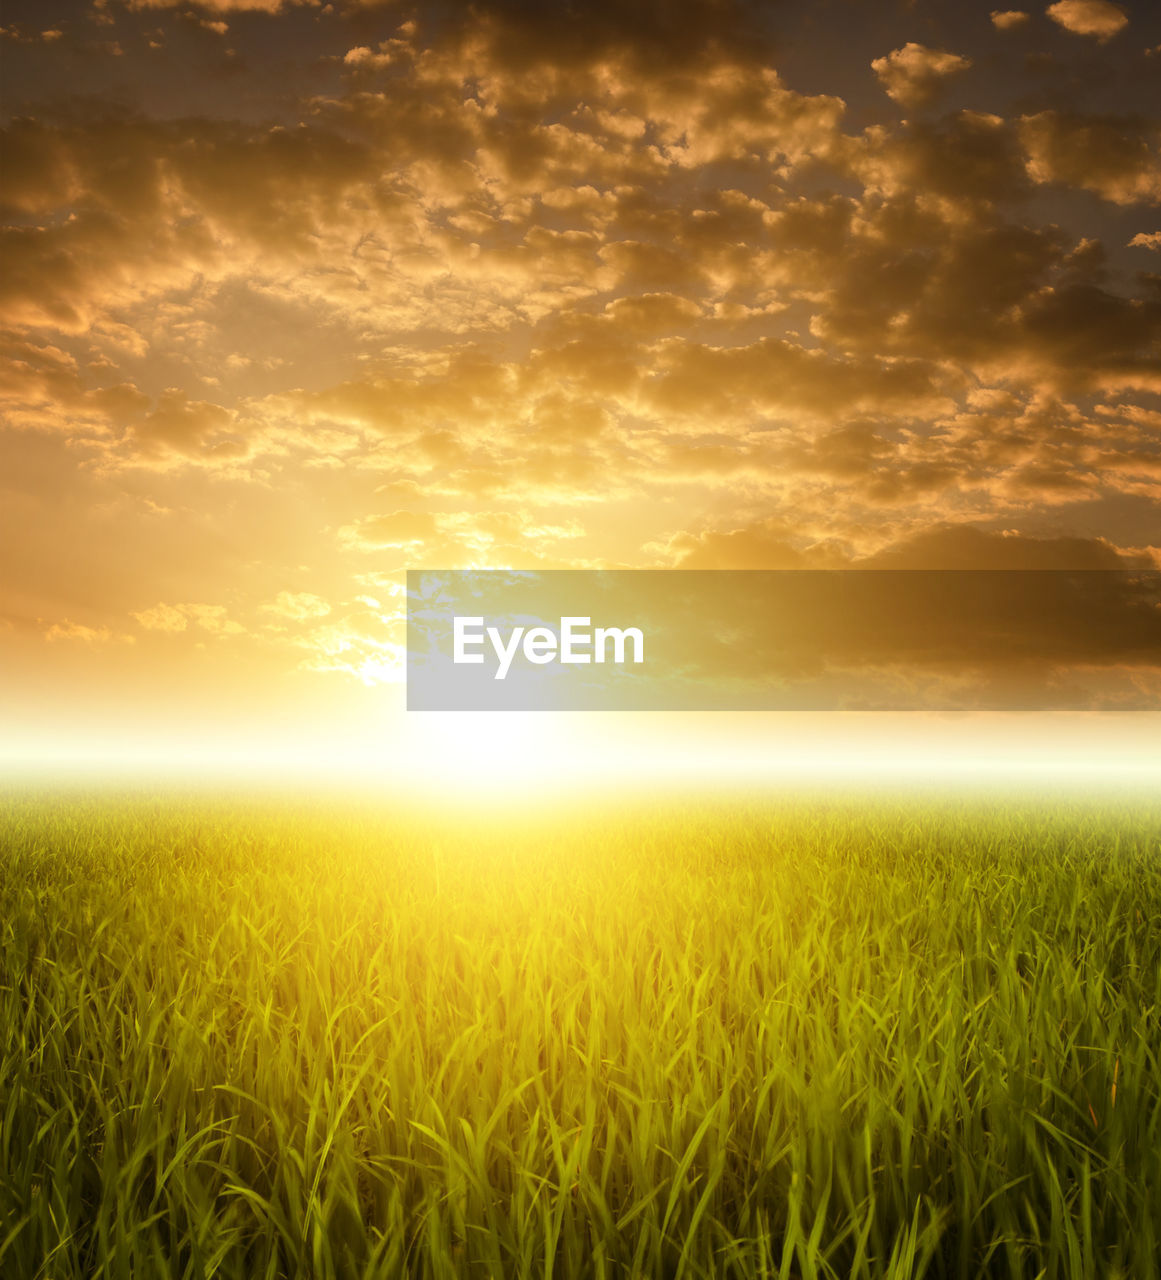 sunset, sky, field, land, cloud - sky, plant, beauty in nature, scenics - nature, crop, tranquility, agriculture, landscape, tranquil scene, sunlight, sun, rural scene, nature, environment, growth, cereal plant, no people, lens flare, outdoors, bright